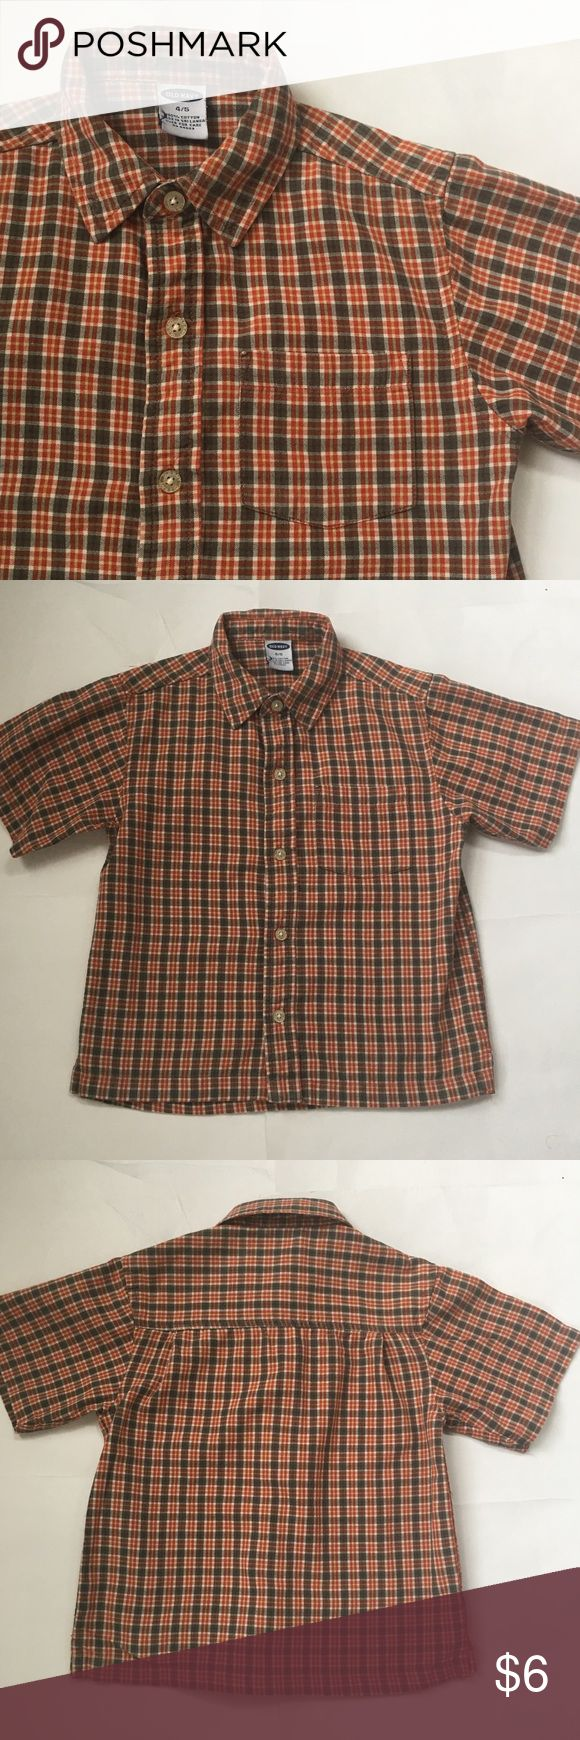 Old Navy shirt Excellent used condition Size 4/5 or XS Old Navy Shirts & Tops Button Down Shirts